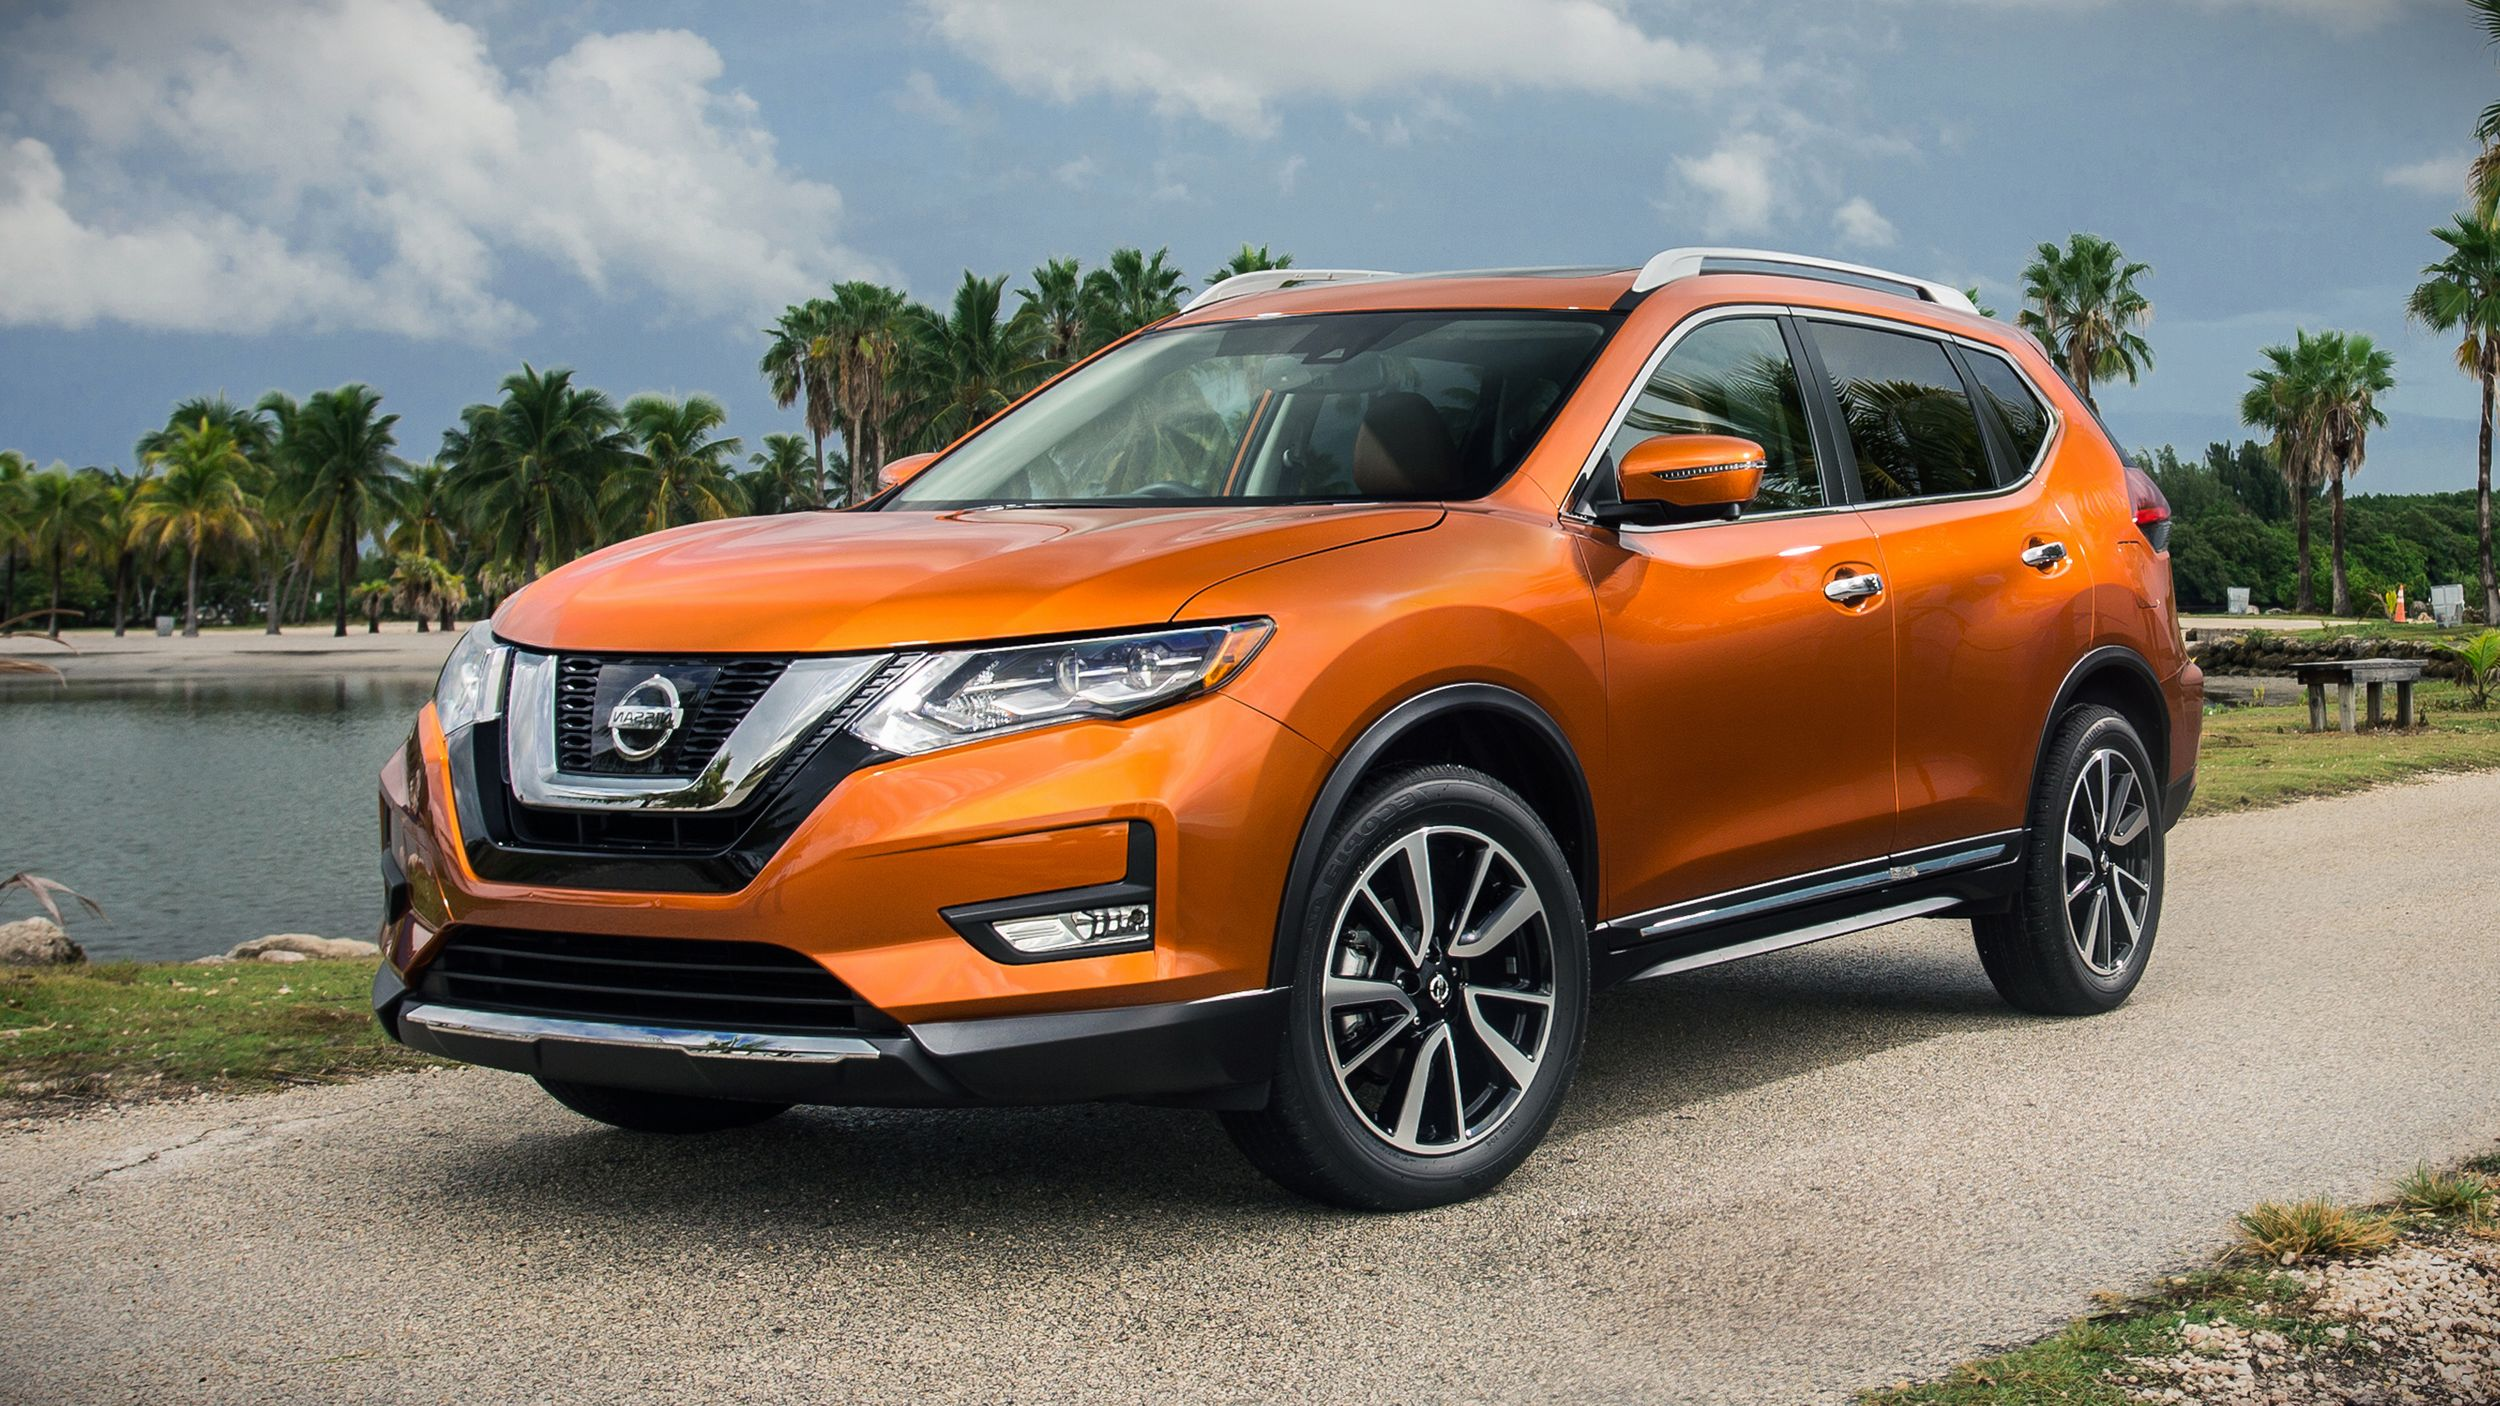 2018 nissan x trail release date in australia new suv price new suv price. Black Bedroom Furniture Sets. Home Design Ideas